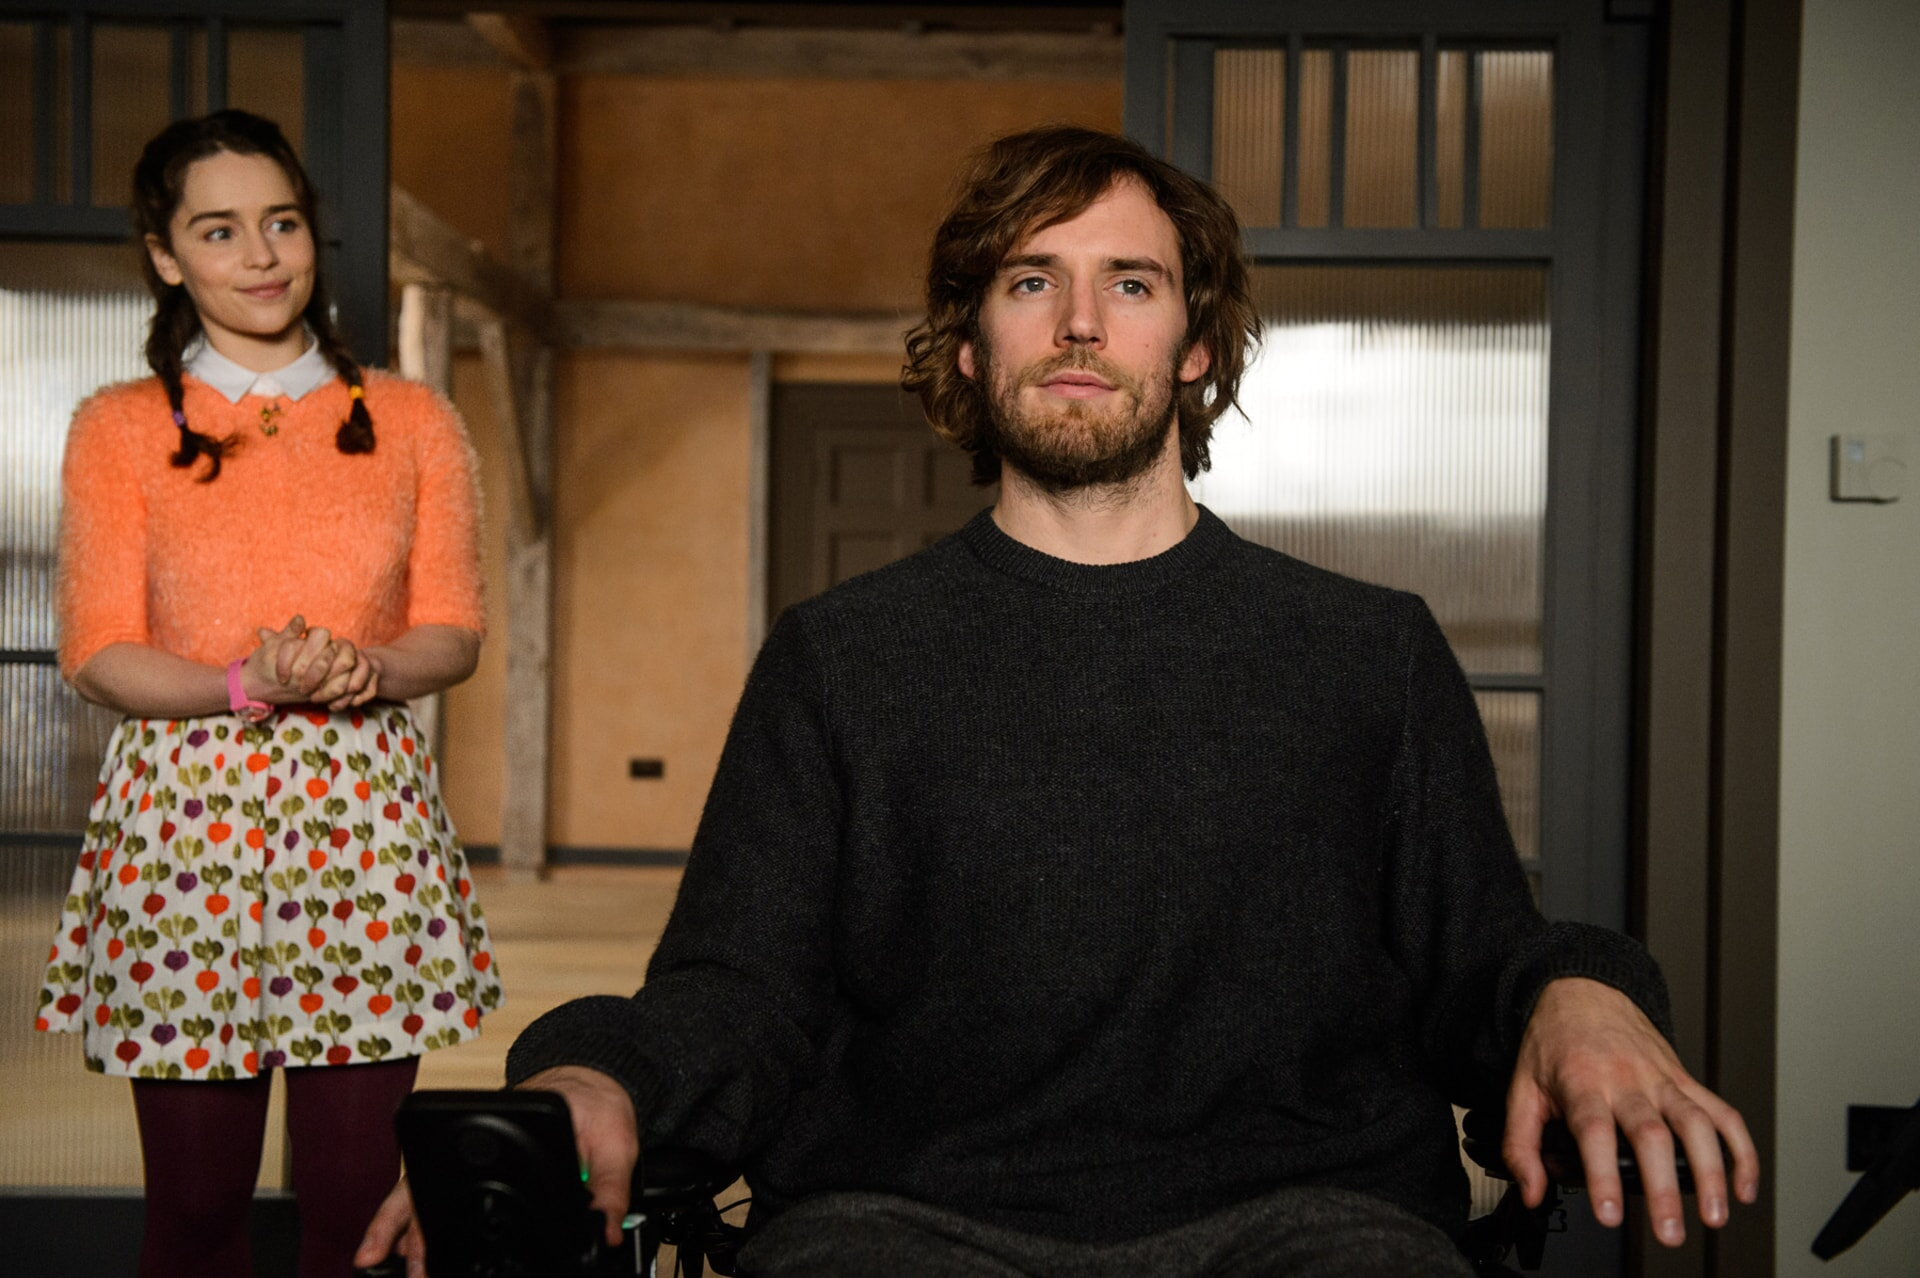 EMILIA CLARKE standing in background as Lou Clark and SAM CLAFLIN as Will Traynor in wheelchair.